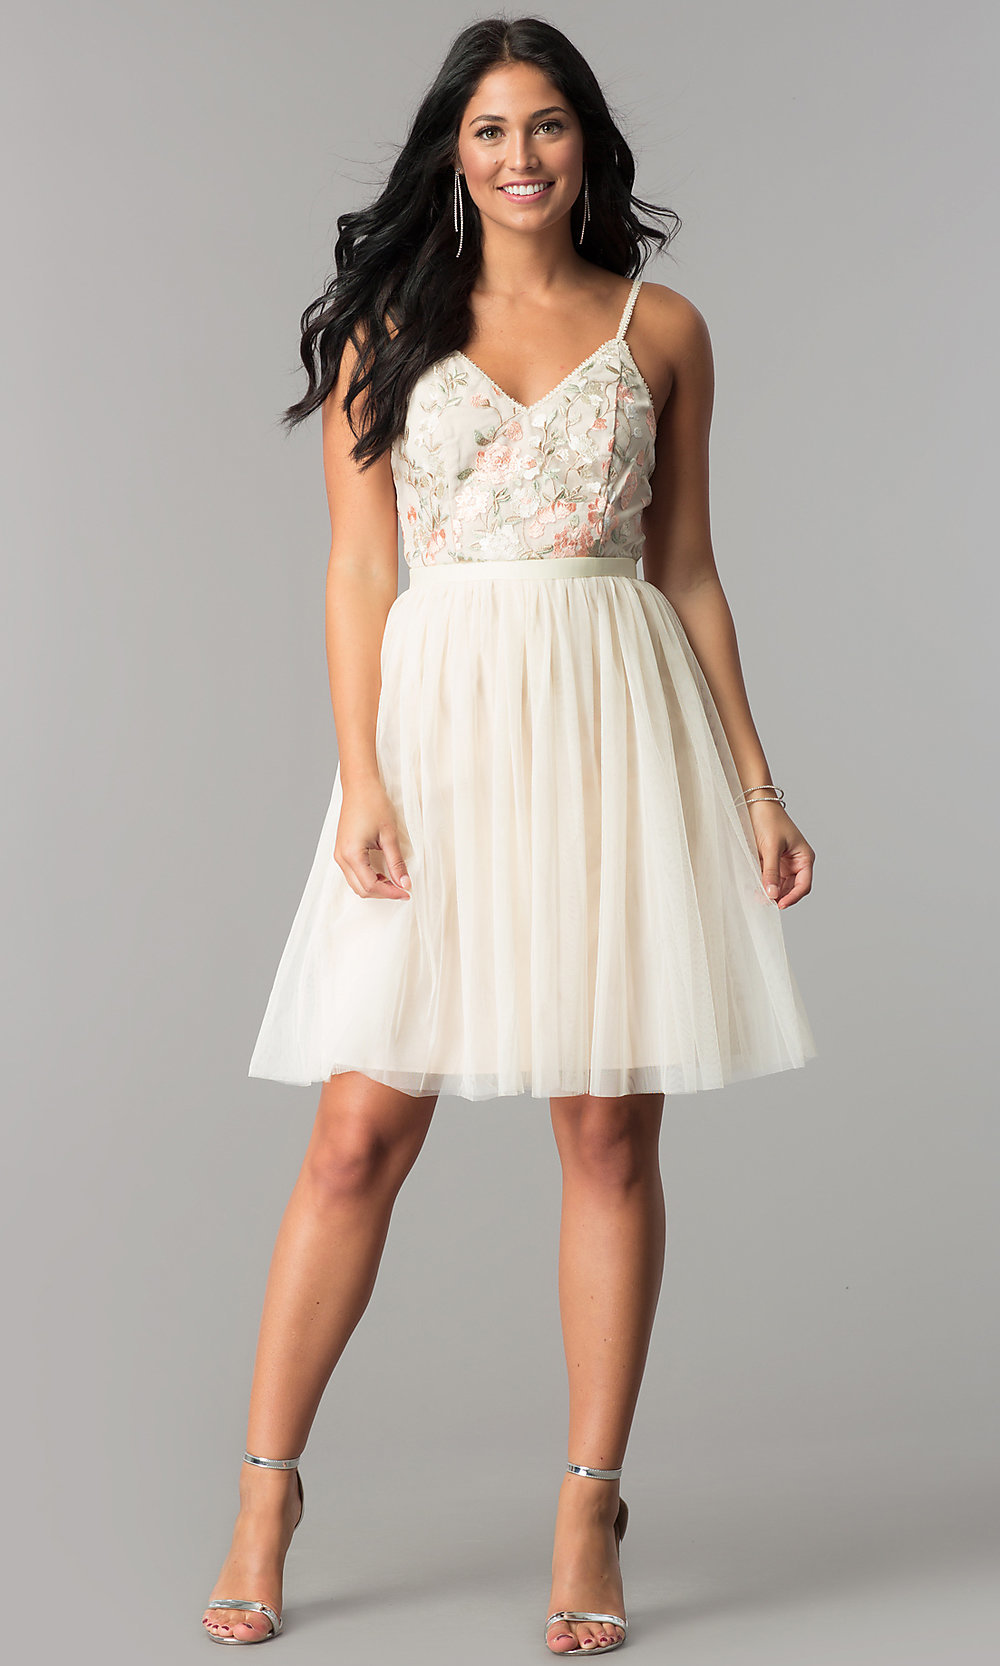 Nude Prom Dresses, Beige Party Dresses - PromGirl